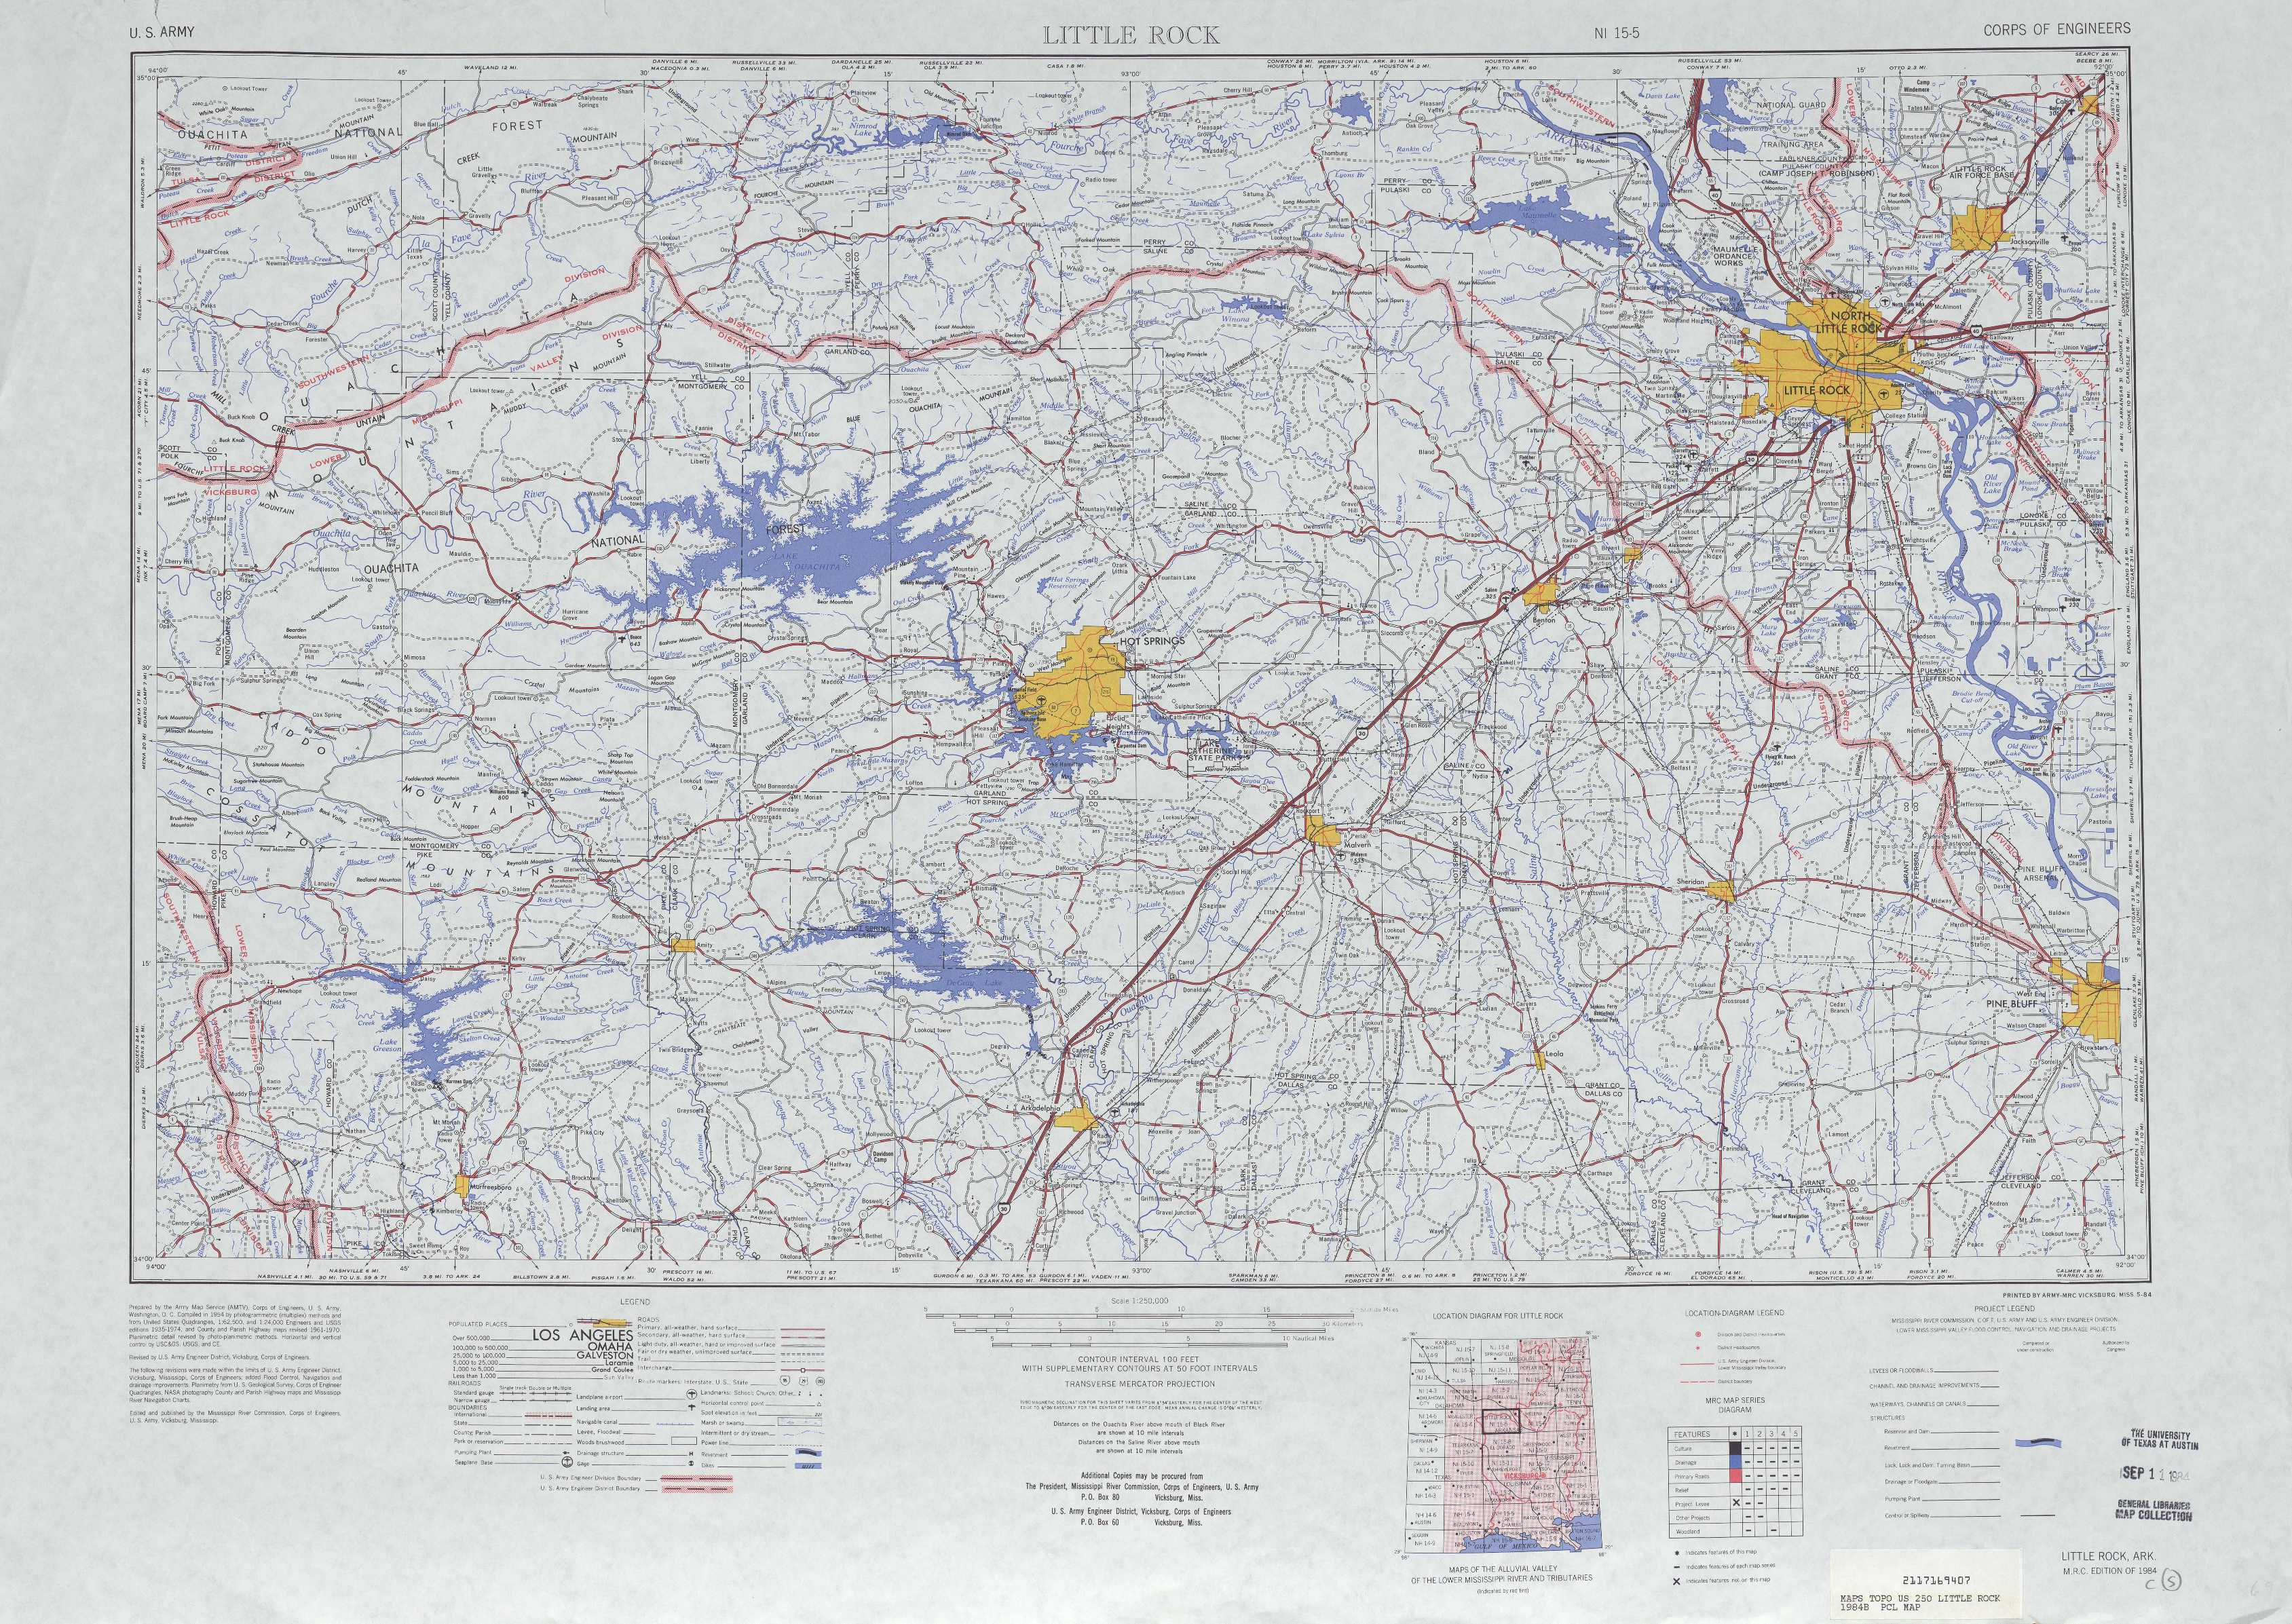 delaware state forest map with 34092a1 on 5587660138 as well 41074e6 in addition Forest Haven Asylum Laurel Md additionally Fedlands together with 35078d7.